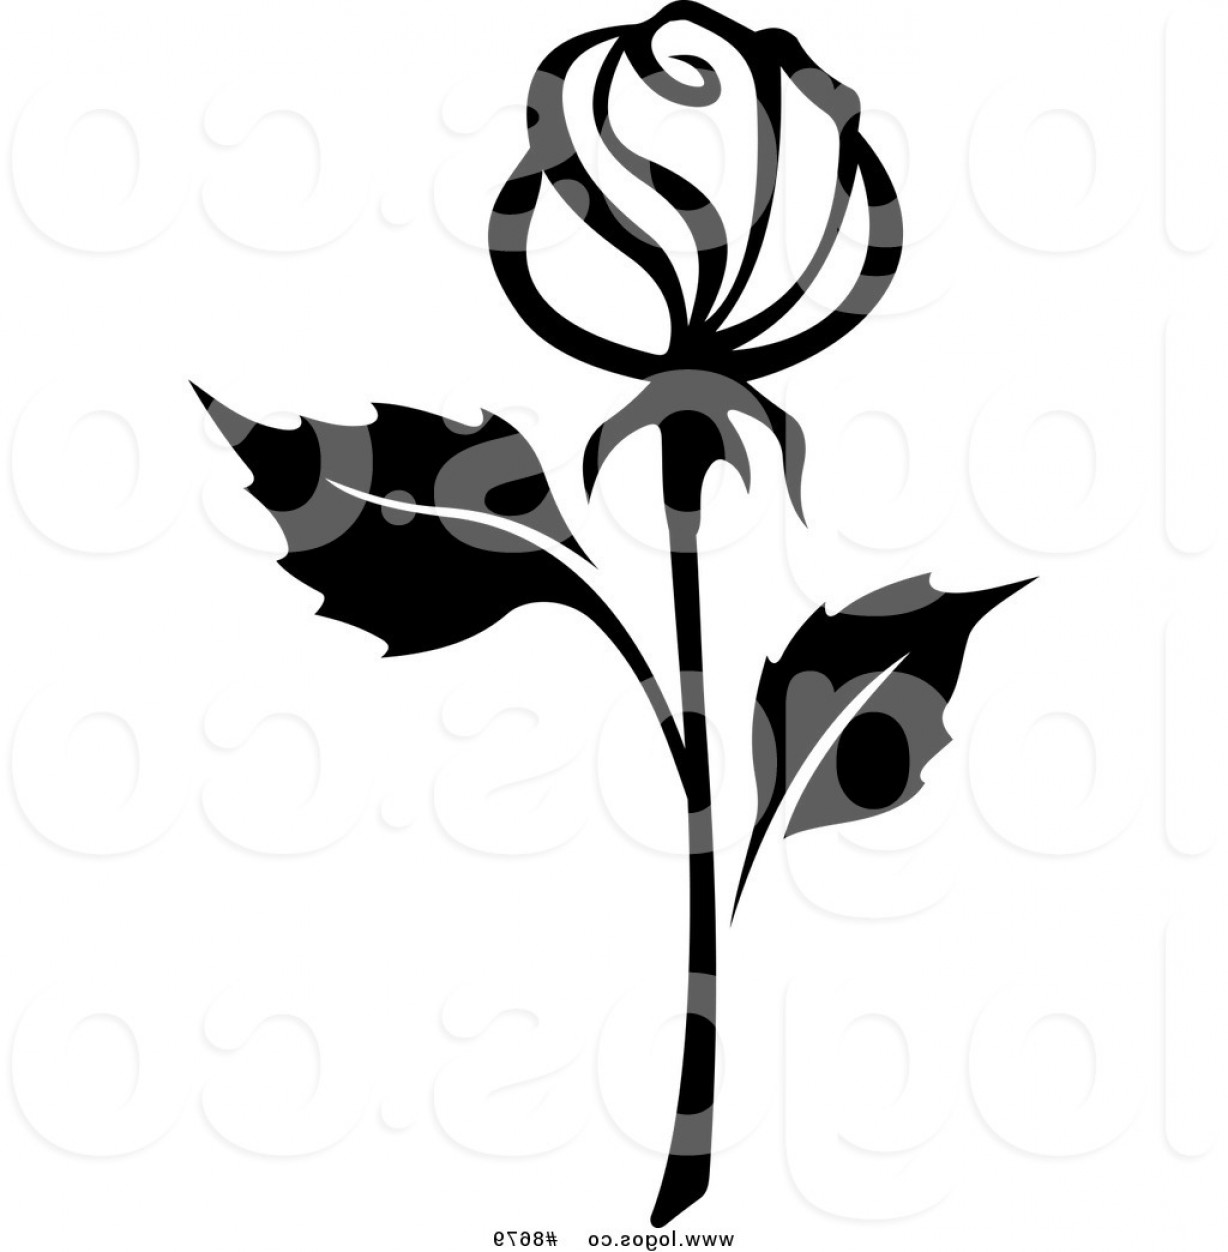 Roses Logo Vector: Royalty Free Clip Art Vector Black And White Rose With A Long Stem Logo By Vector Tradition Sm